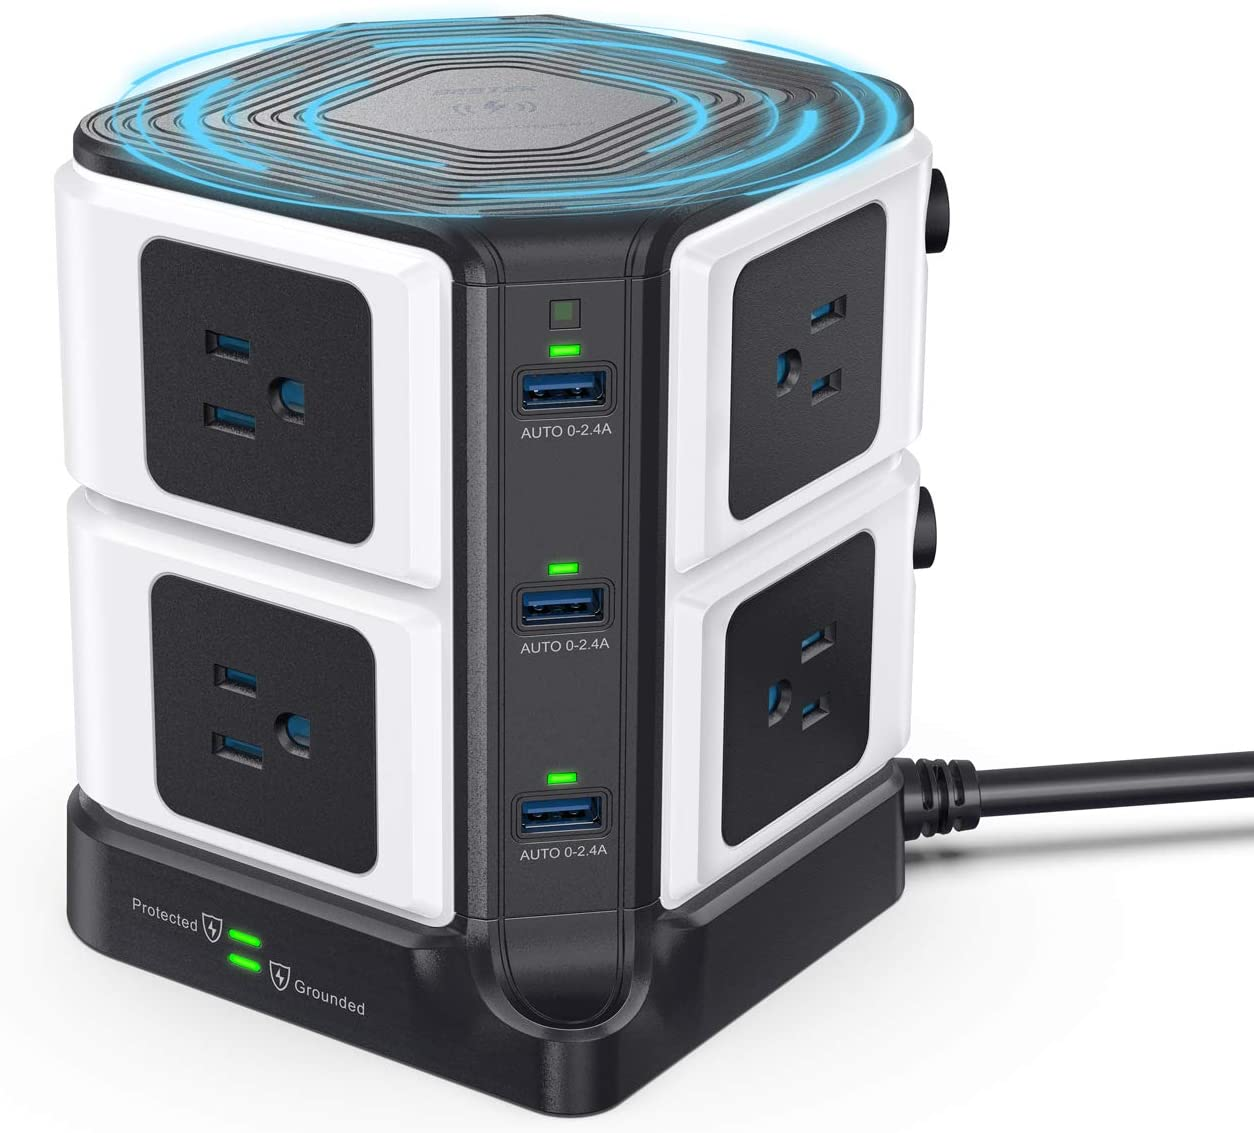 USB Power Strip with Wireless Charger BESTEK 8-Outlet Surge Protector and 40W 6-Port USB Charging Dock Station,1500 Joules,ETL Listed,Dorm Room Accessories (8AC+6USB+Wireless Charger-Black)